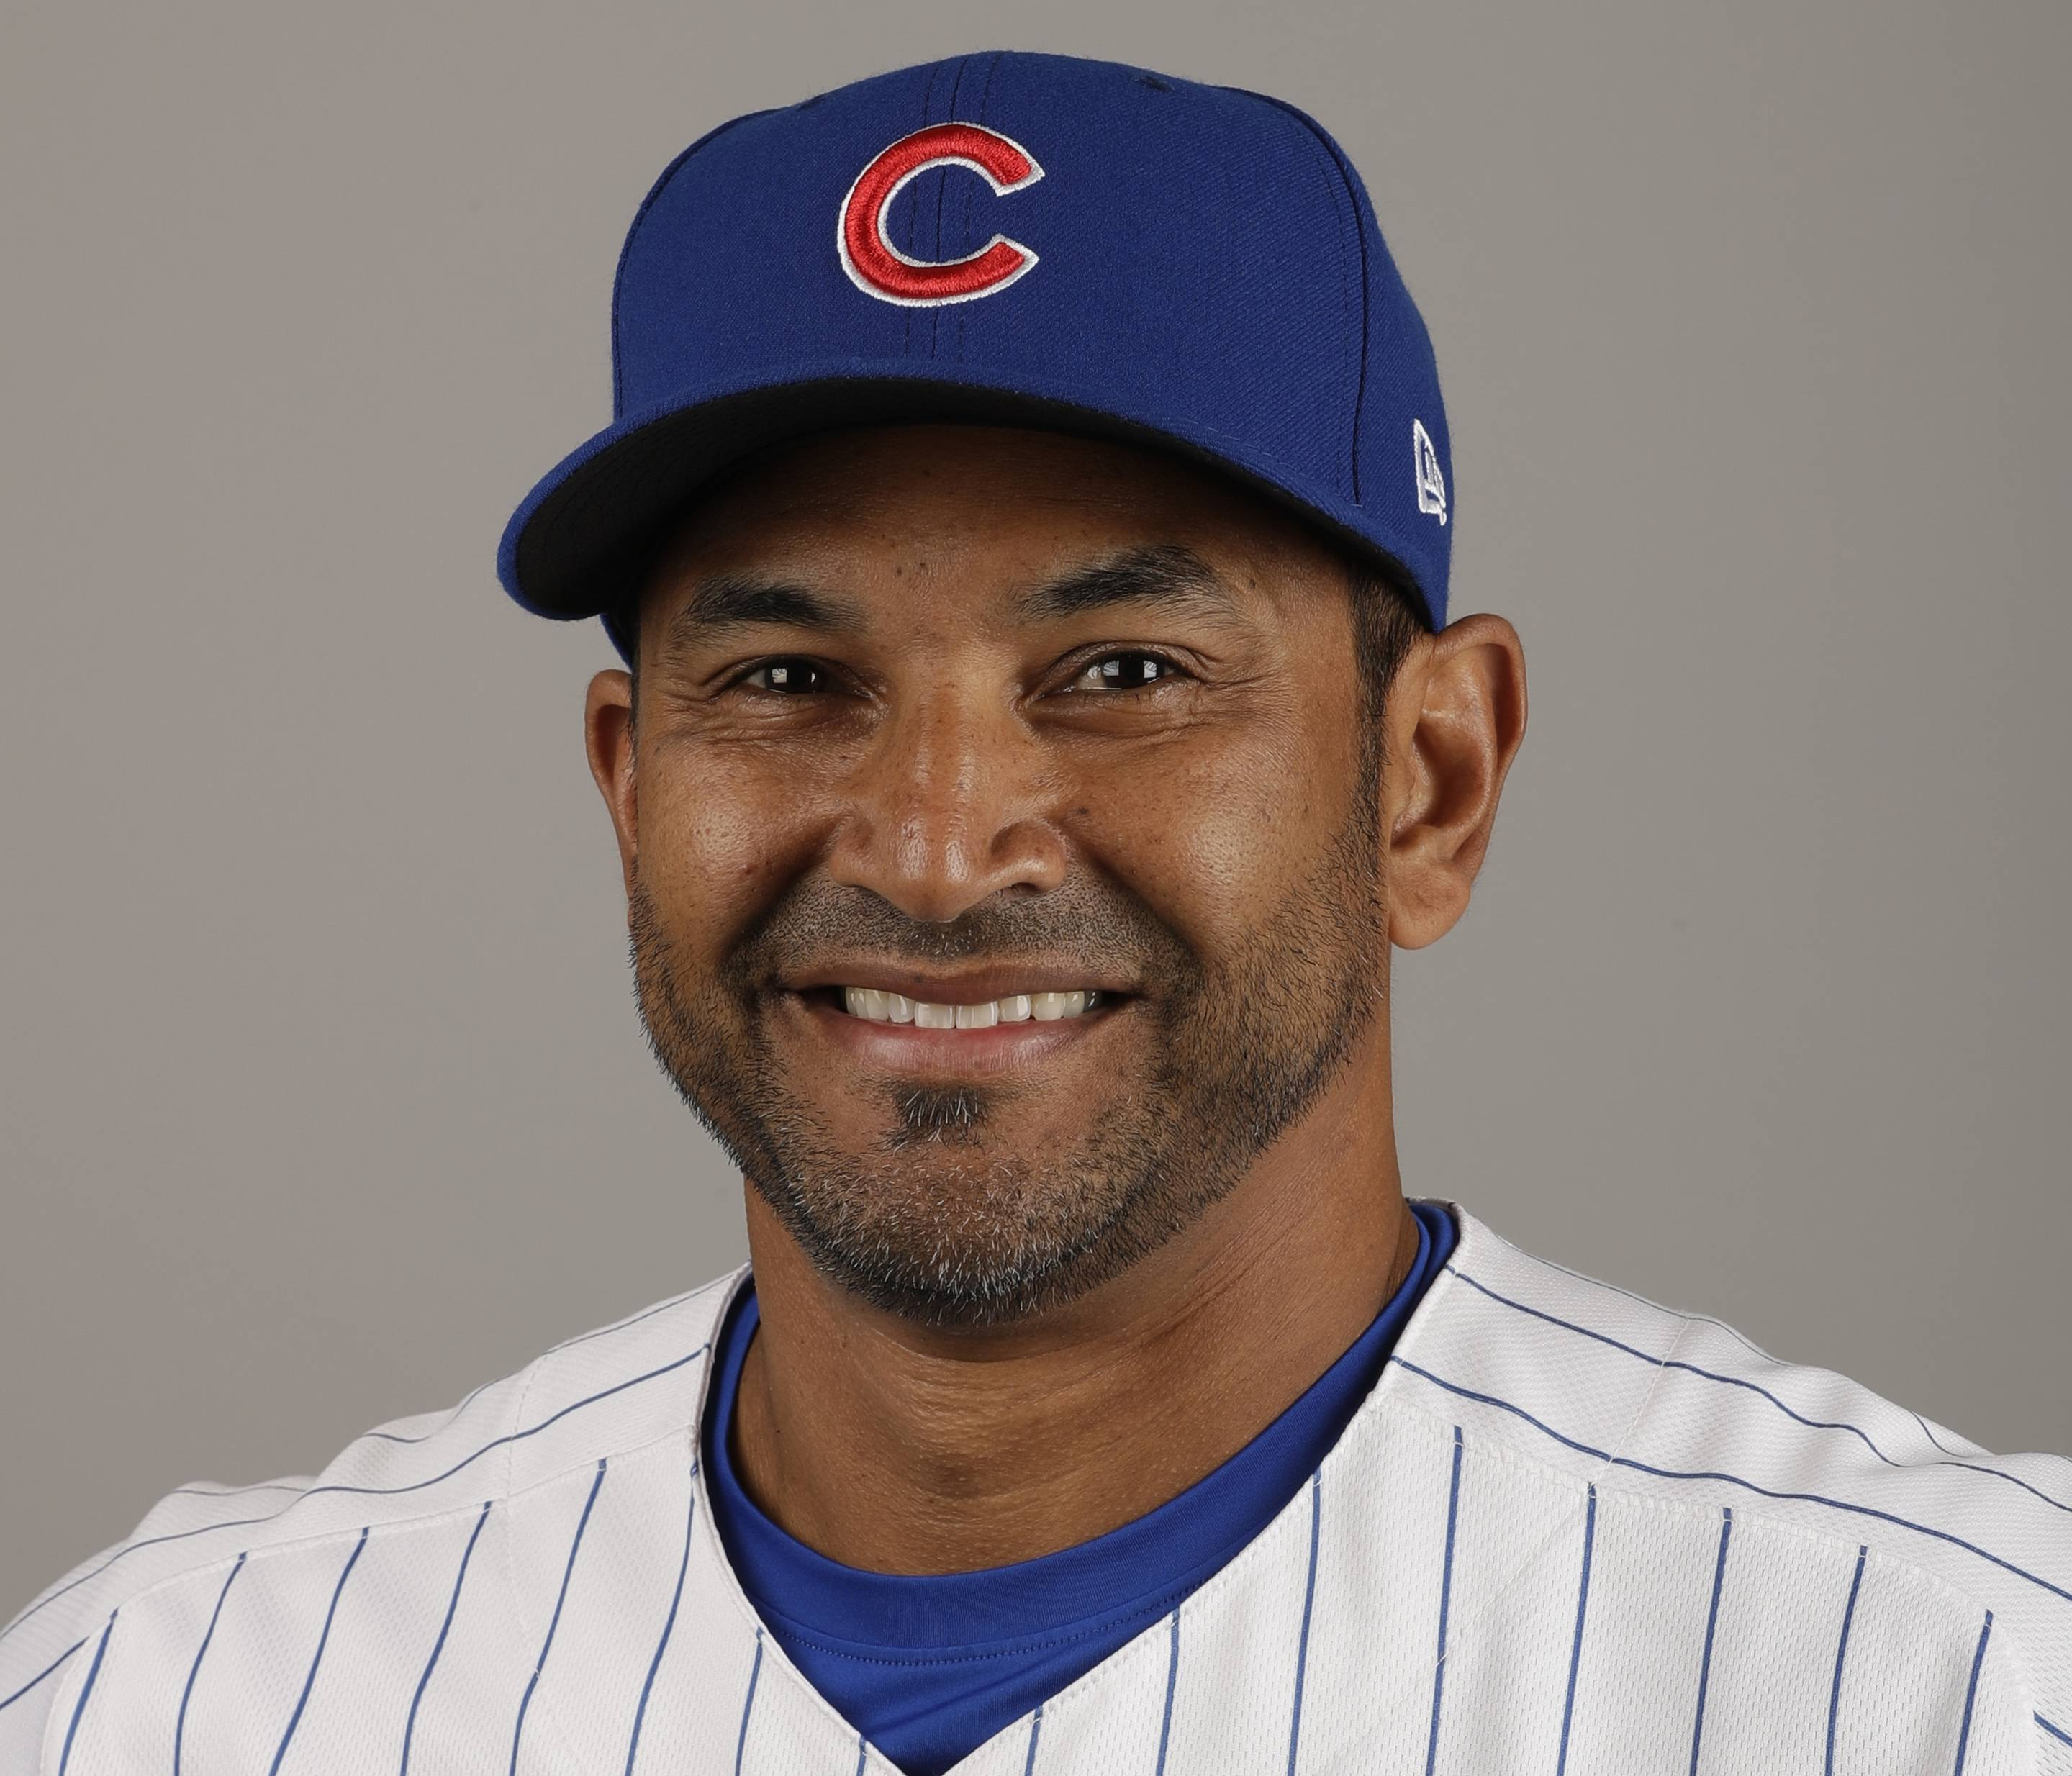 FILE - This Tuesday, Feb. 21, 2017, file photo shows Chicago Cubs bench coach Dave Martinez. A person with knowledge of the deal tells The Associated Press, Sunday, Oct. 29, 2017, that the Washington Nationals and Martinez have agreed to a managerial contract for three years plus an option.